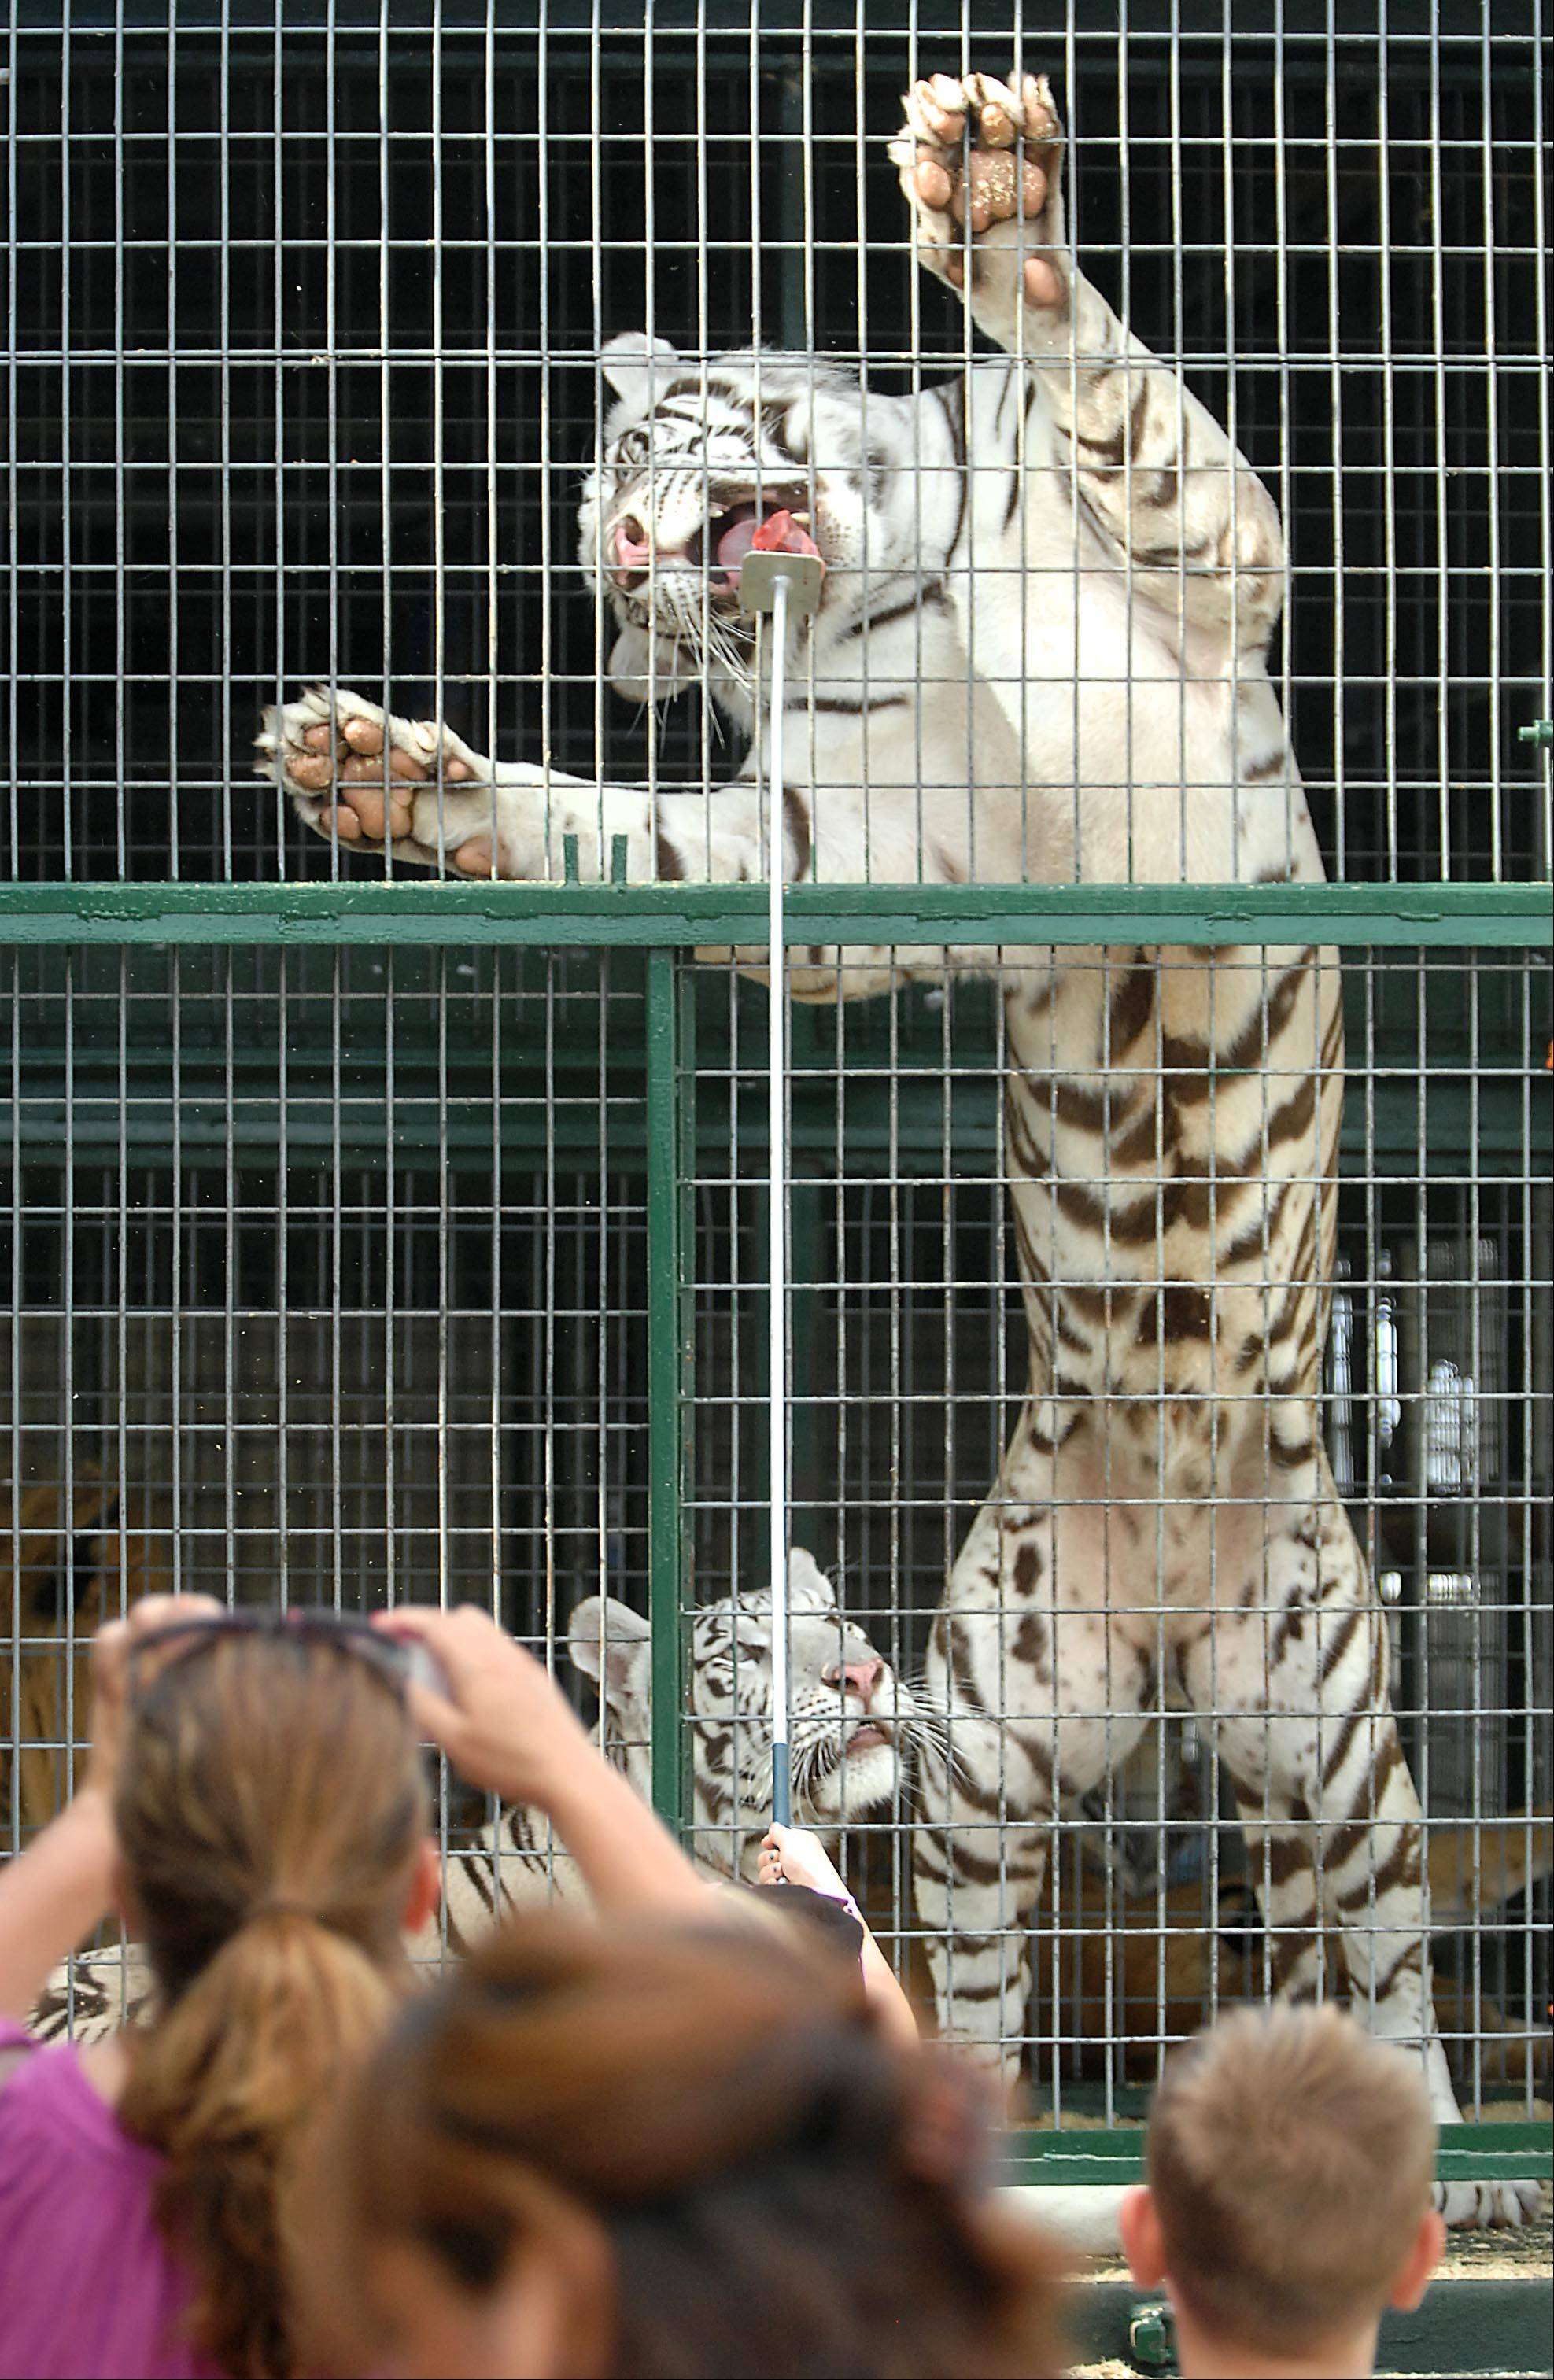 A Siberian Tiger stands up to take a bite of raw meat on a stick offered by a fair goer on the first day of the Kane County Fair Wednesday in St. Charles. The Big Cat Habitat and Gulf Coast Sanctuary of Florida has daily shows with several large cats. People can also buy a turn to feed a cat.